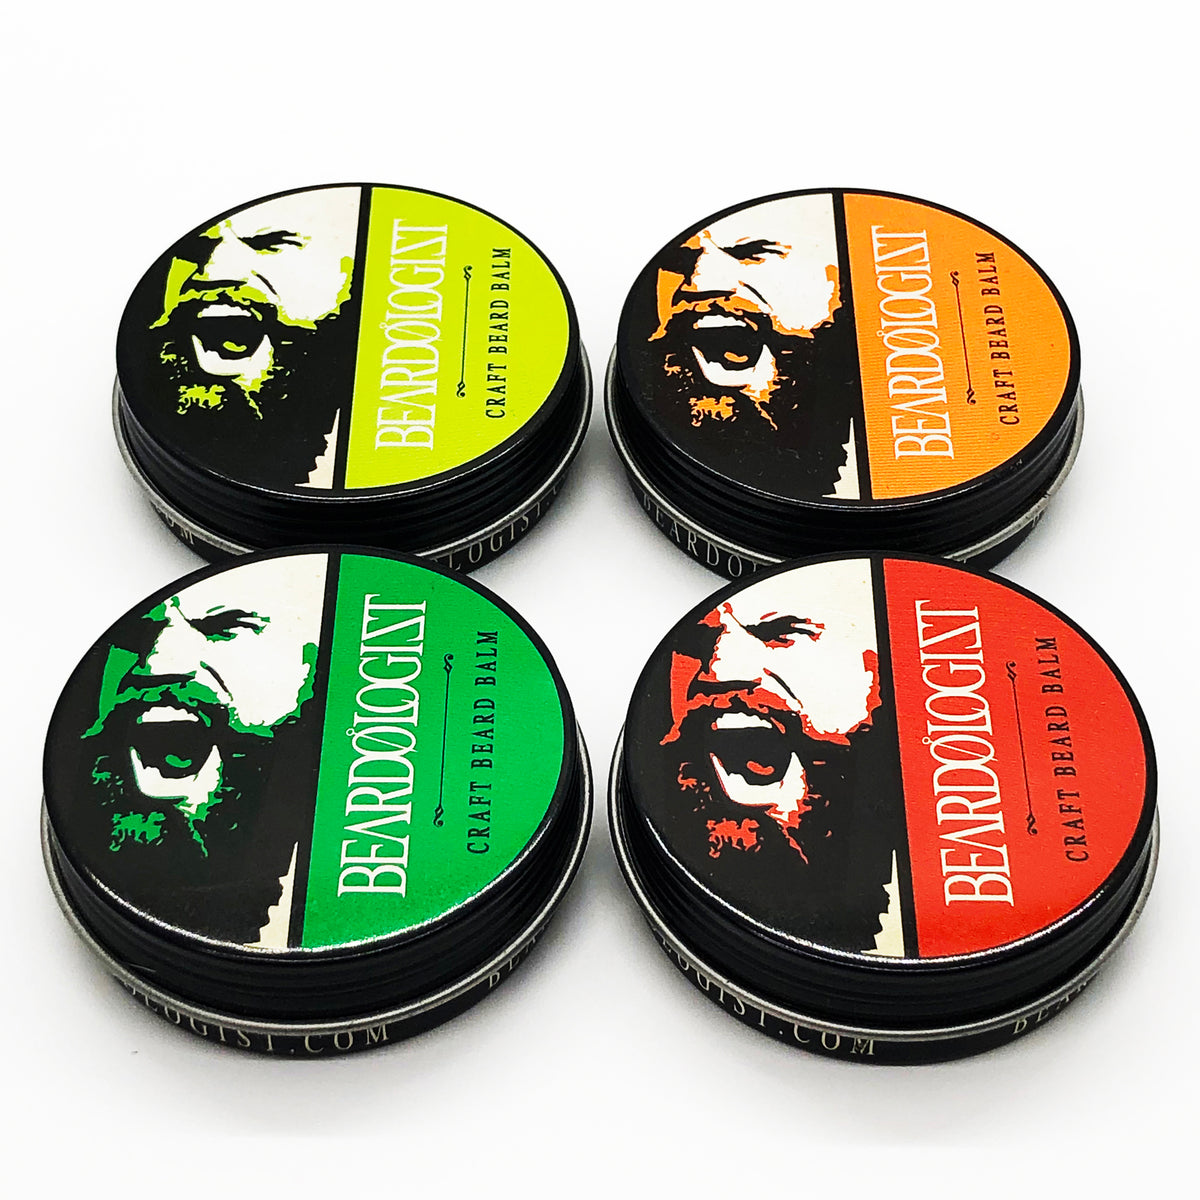 Beardologist beard balm that promotes healthier beard growth and less of that dreaded beard itch.